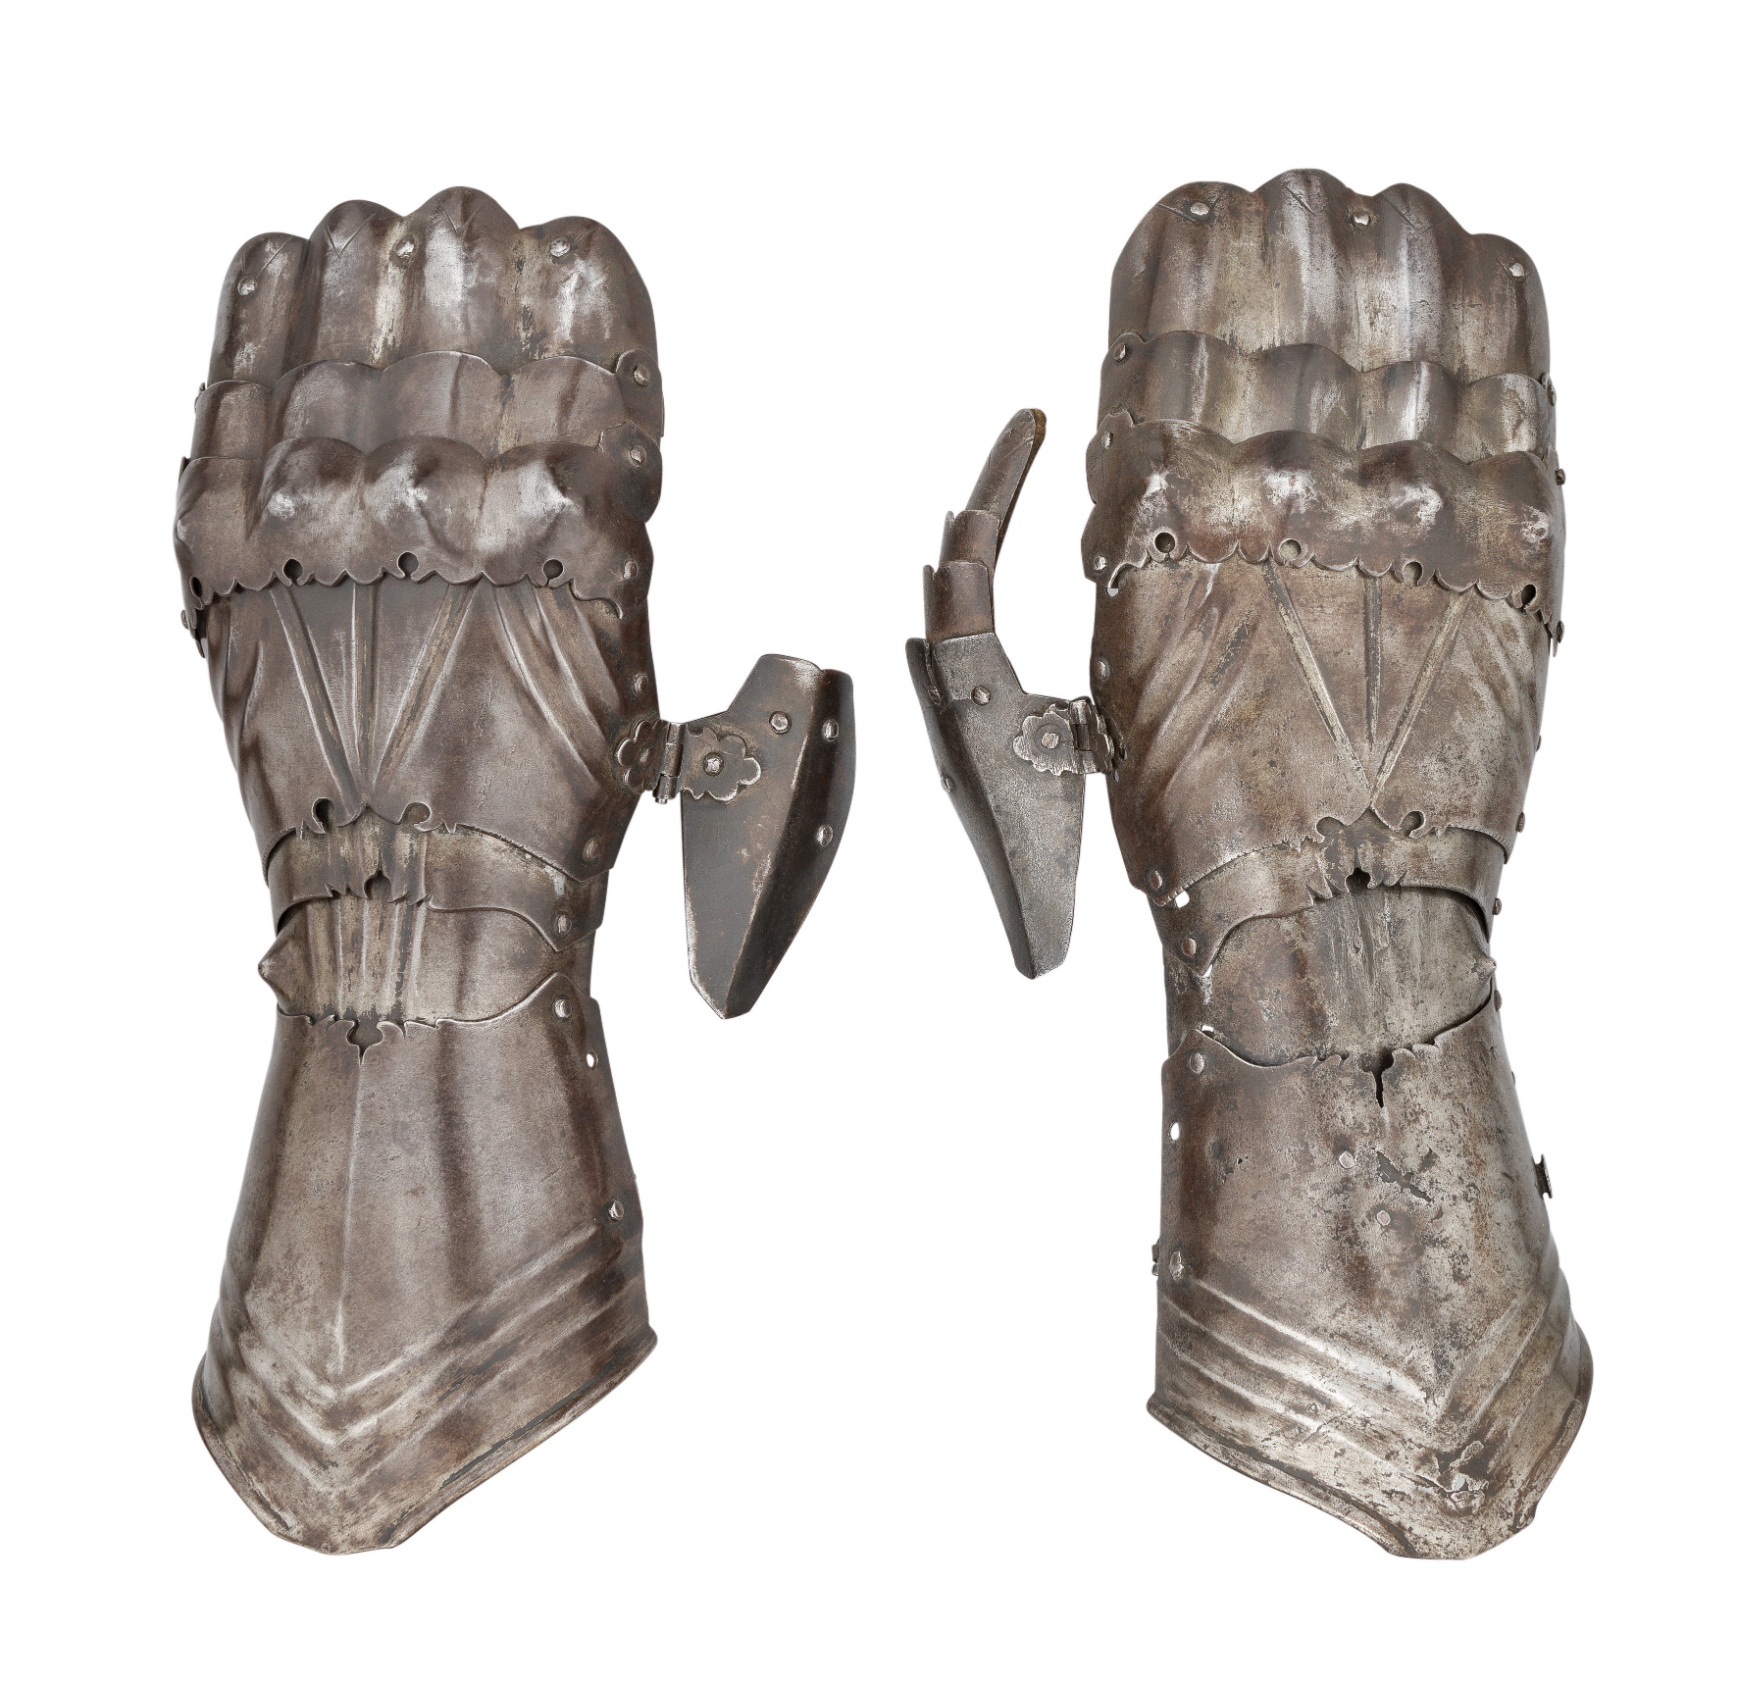 """‡ A PAIR OF GAUNTLETS IN THE LATE 15TH CENTURY GERMAN """"GOTHIC"""" STYLE^ LATE 19TH/EARLY 20TH CENTURY^"""